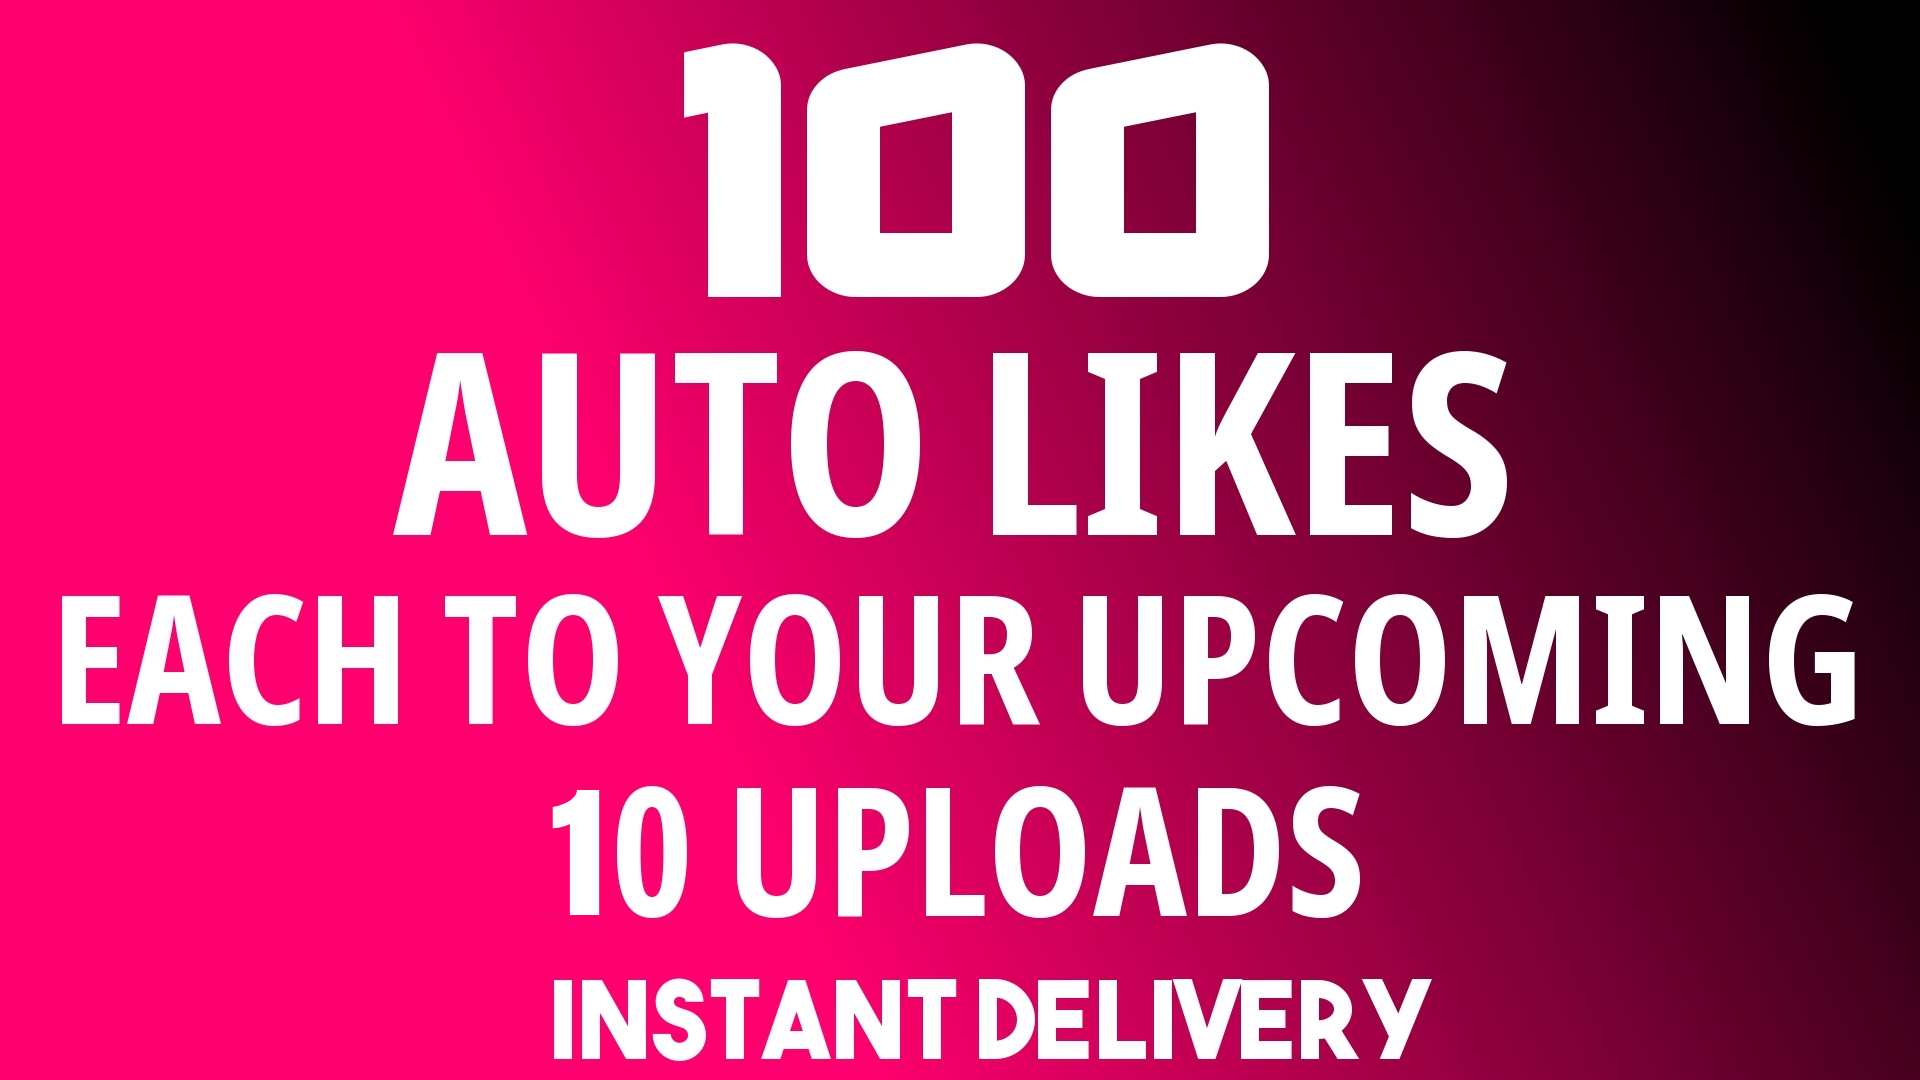 Instant Add Automatically 100+ Likes Each 10 Upcoming Content